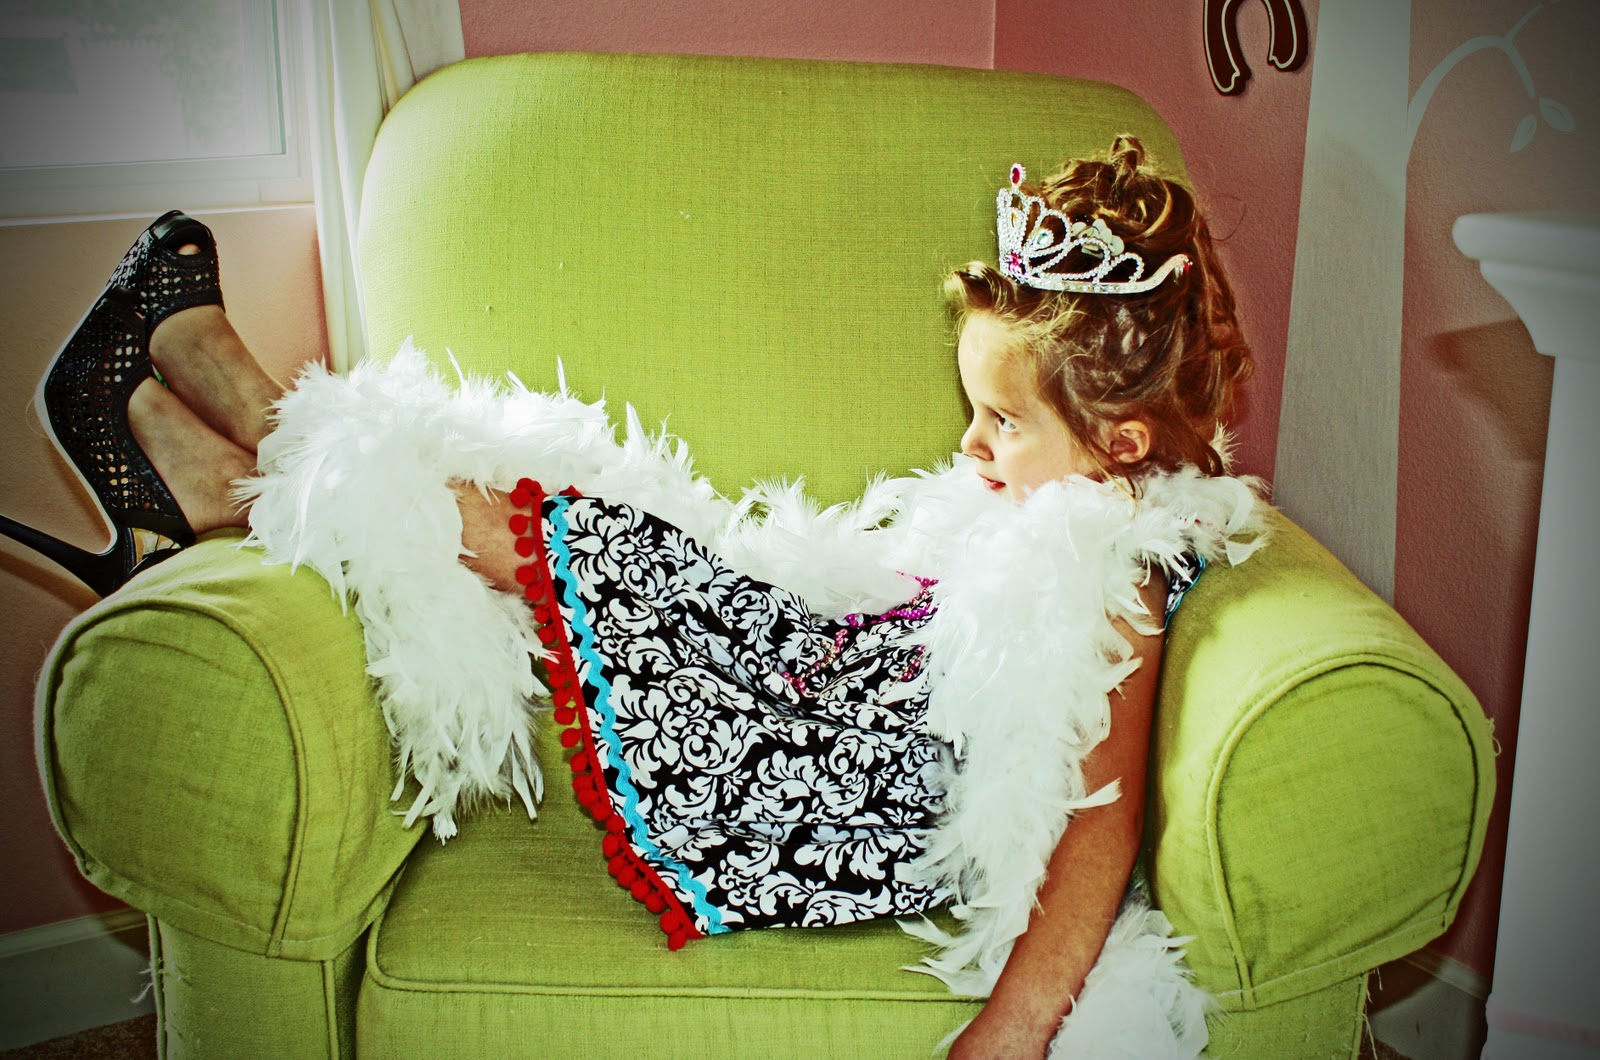 Diy fancy nancy dress icandy handmade diy fancy nancy dress solutioingenieria Images